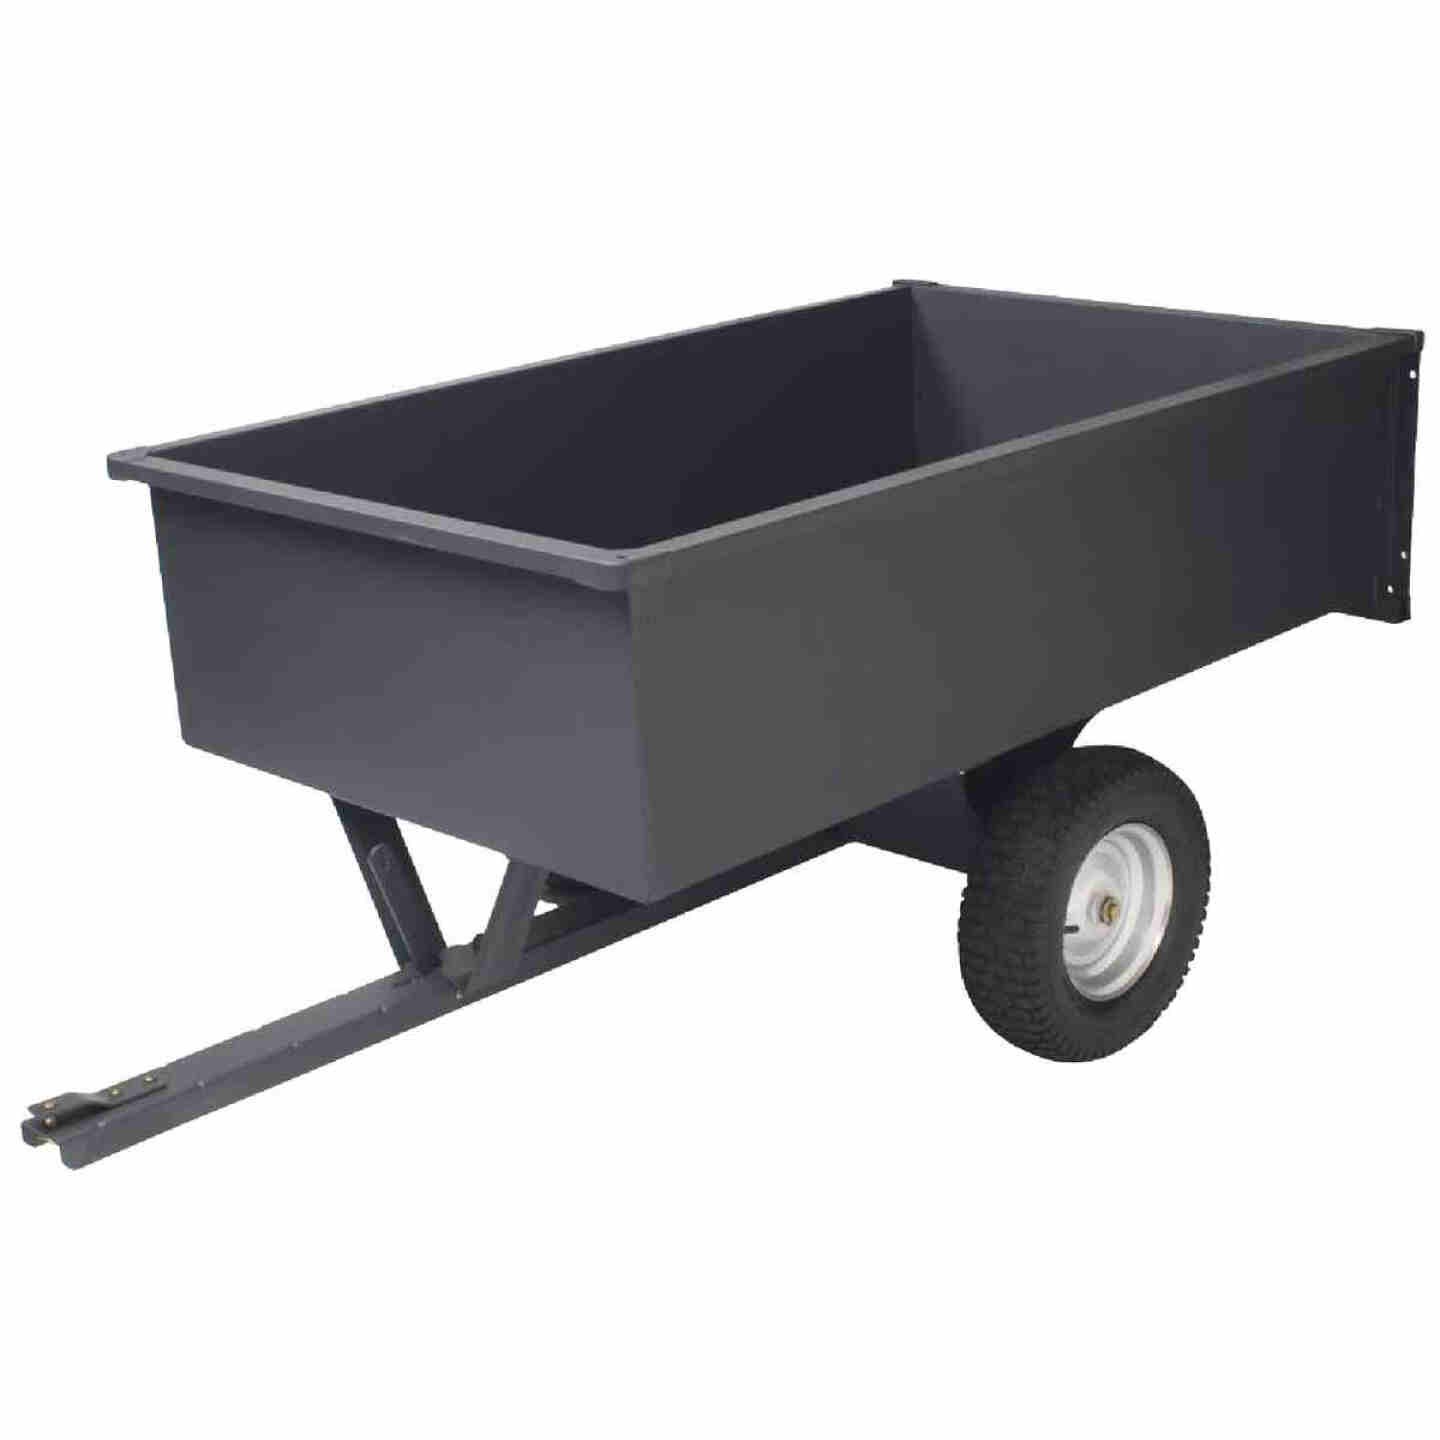 Precision 17 Cu. Ft. 1500 Lb. Steel Tow-Behind Garden Cart Image 1